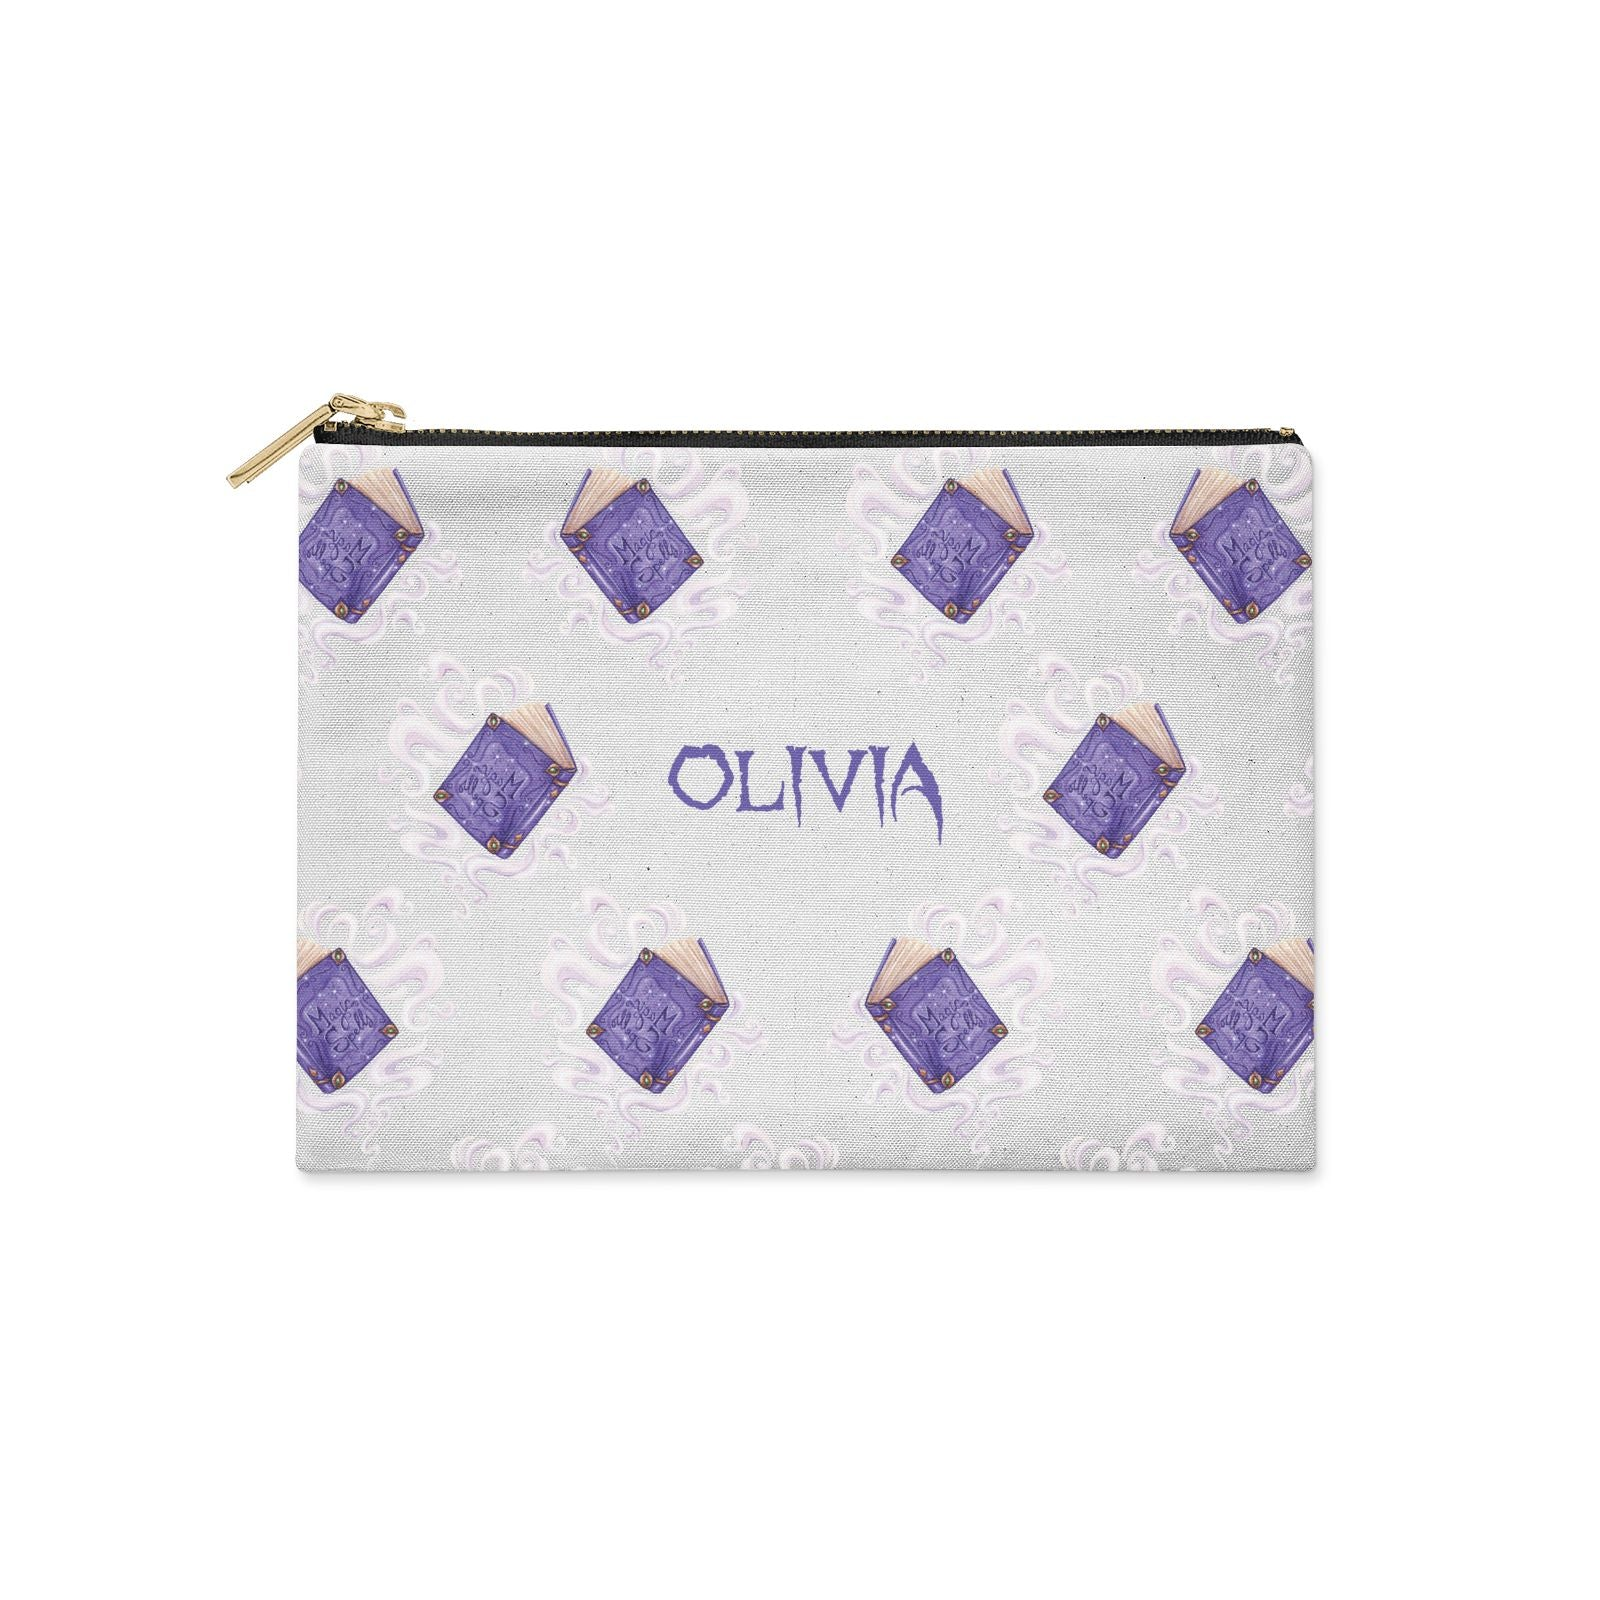 Personalised Halloween Magic Spell Clutch Bag Zipper Pouch